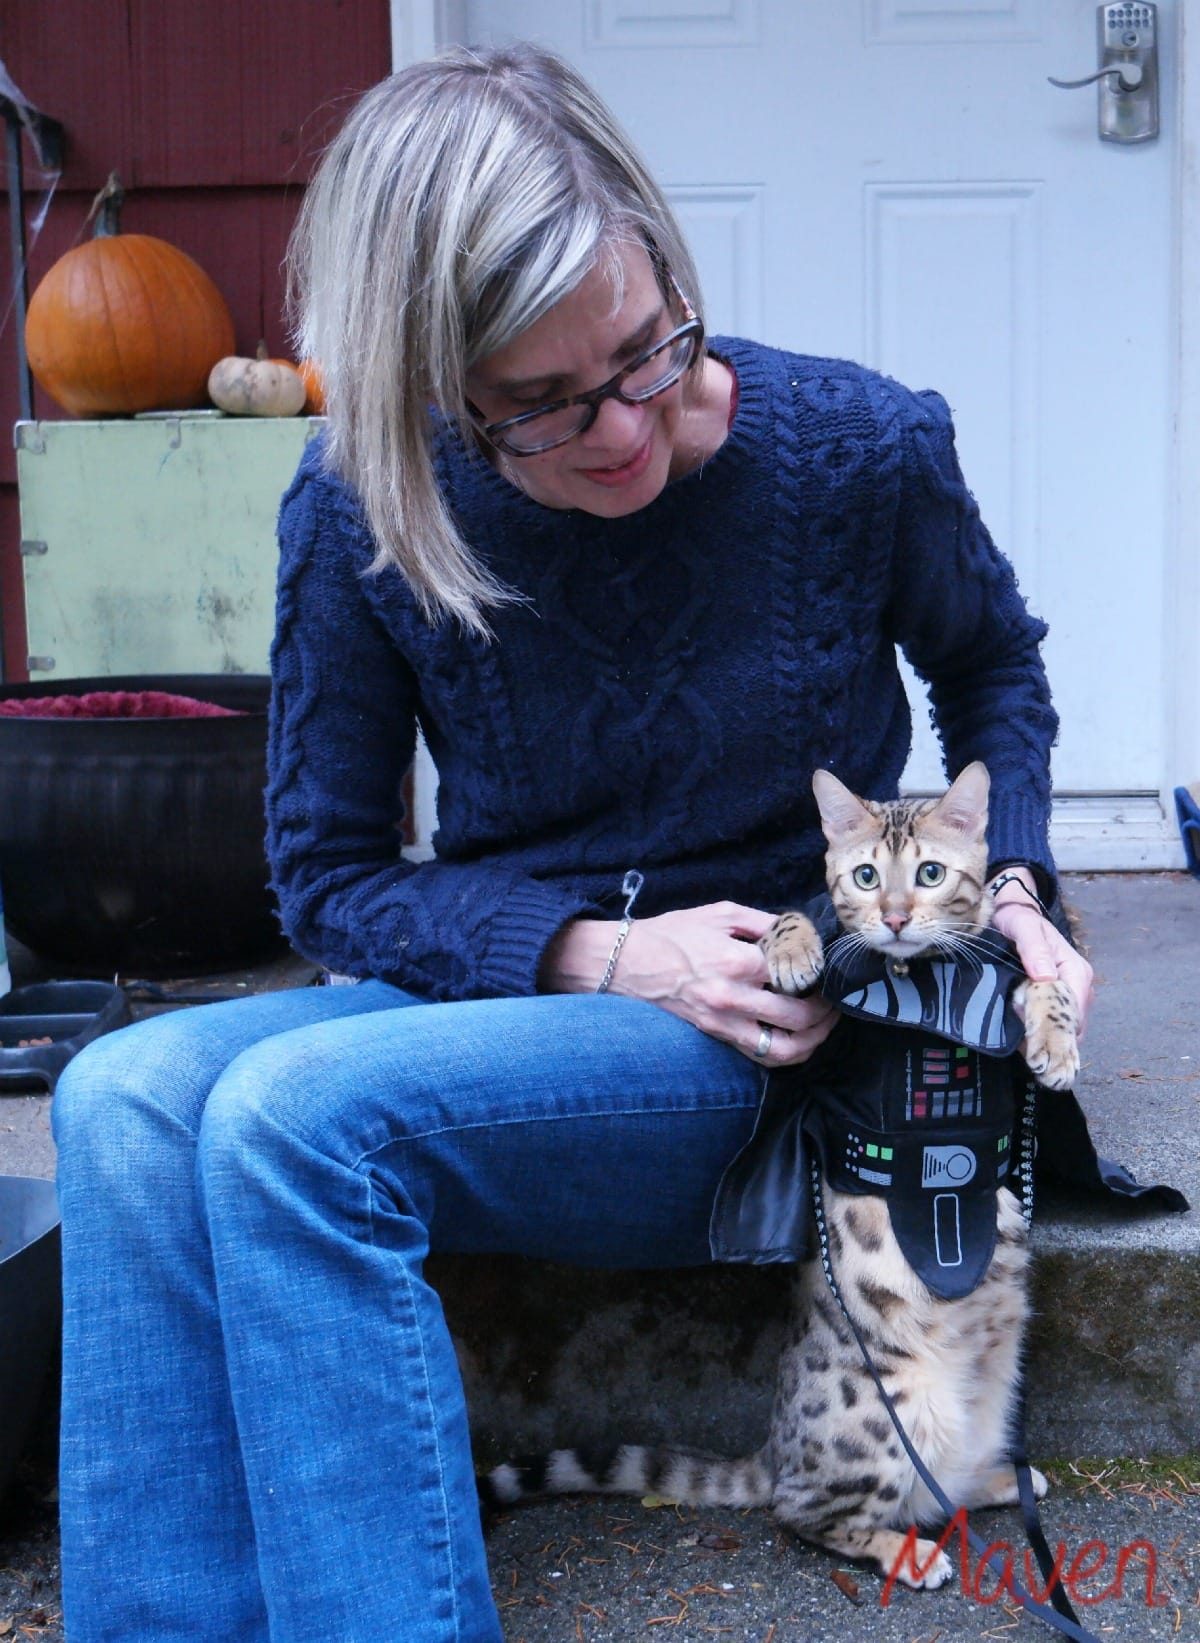 Nixie wears her Star Wars costume with style and grace. Darth Kitty